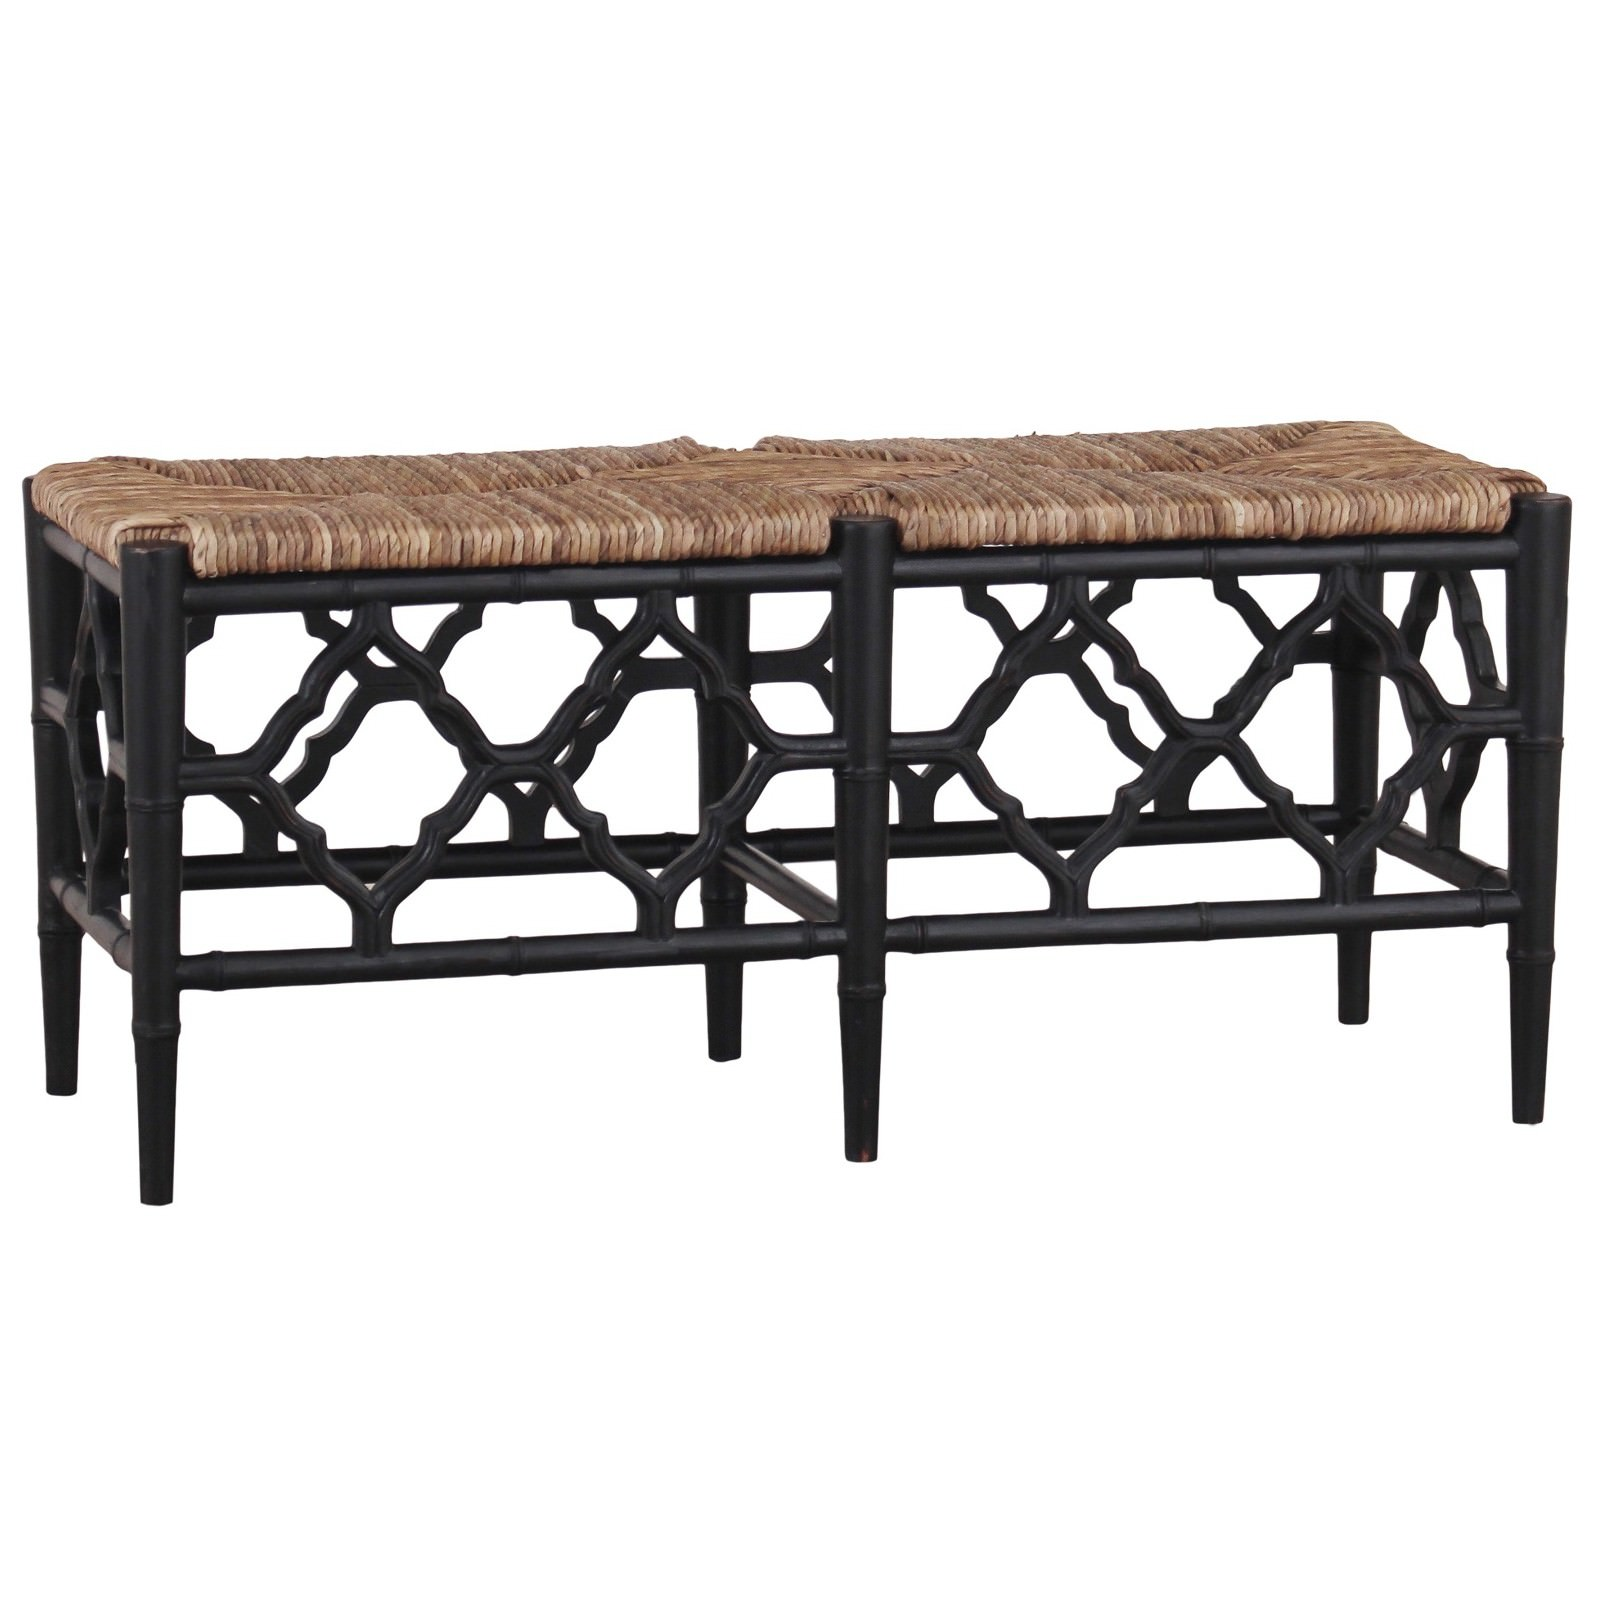 Junzi Mahogany Timber Oriental Bench, Black